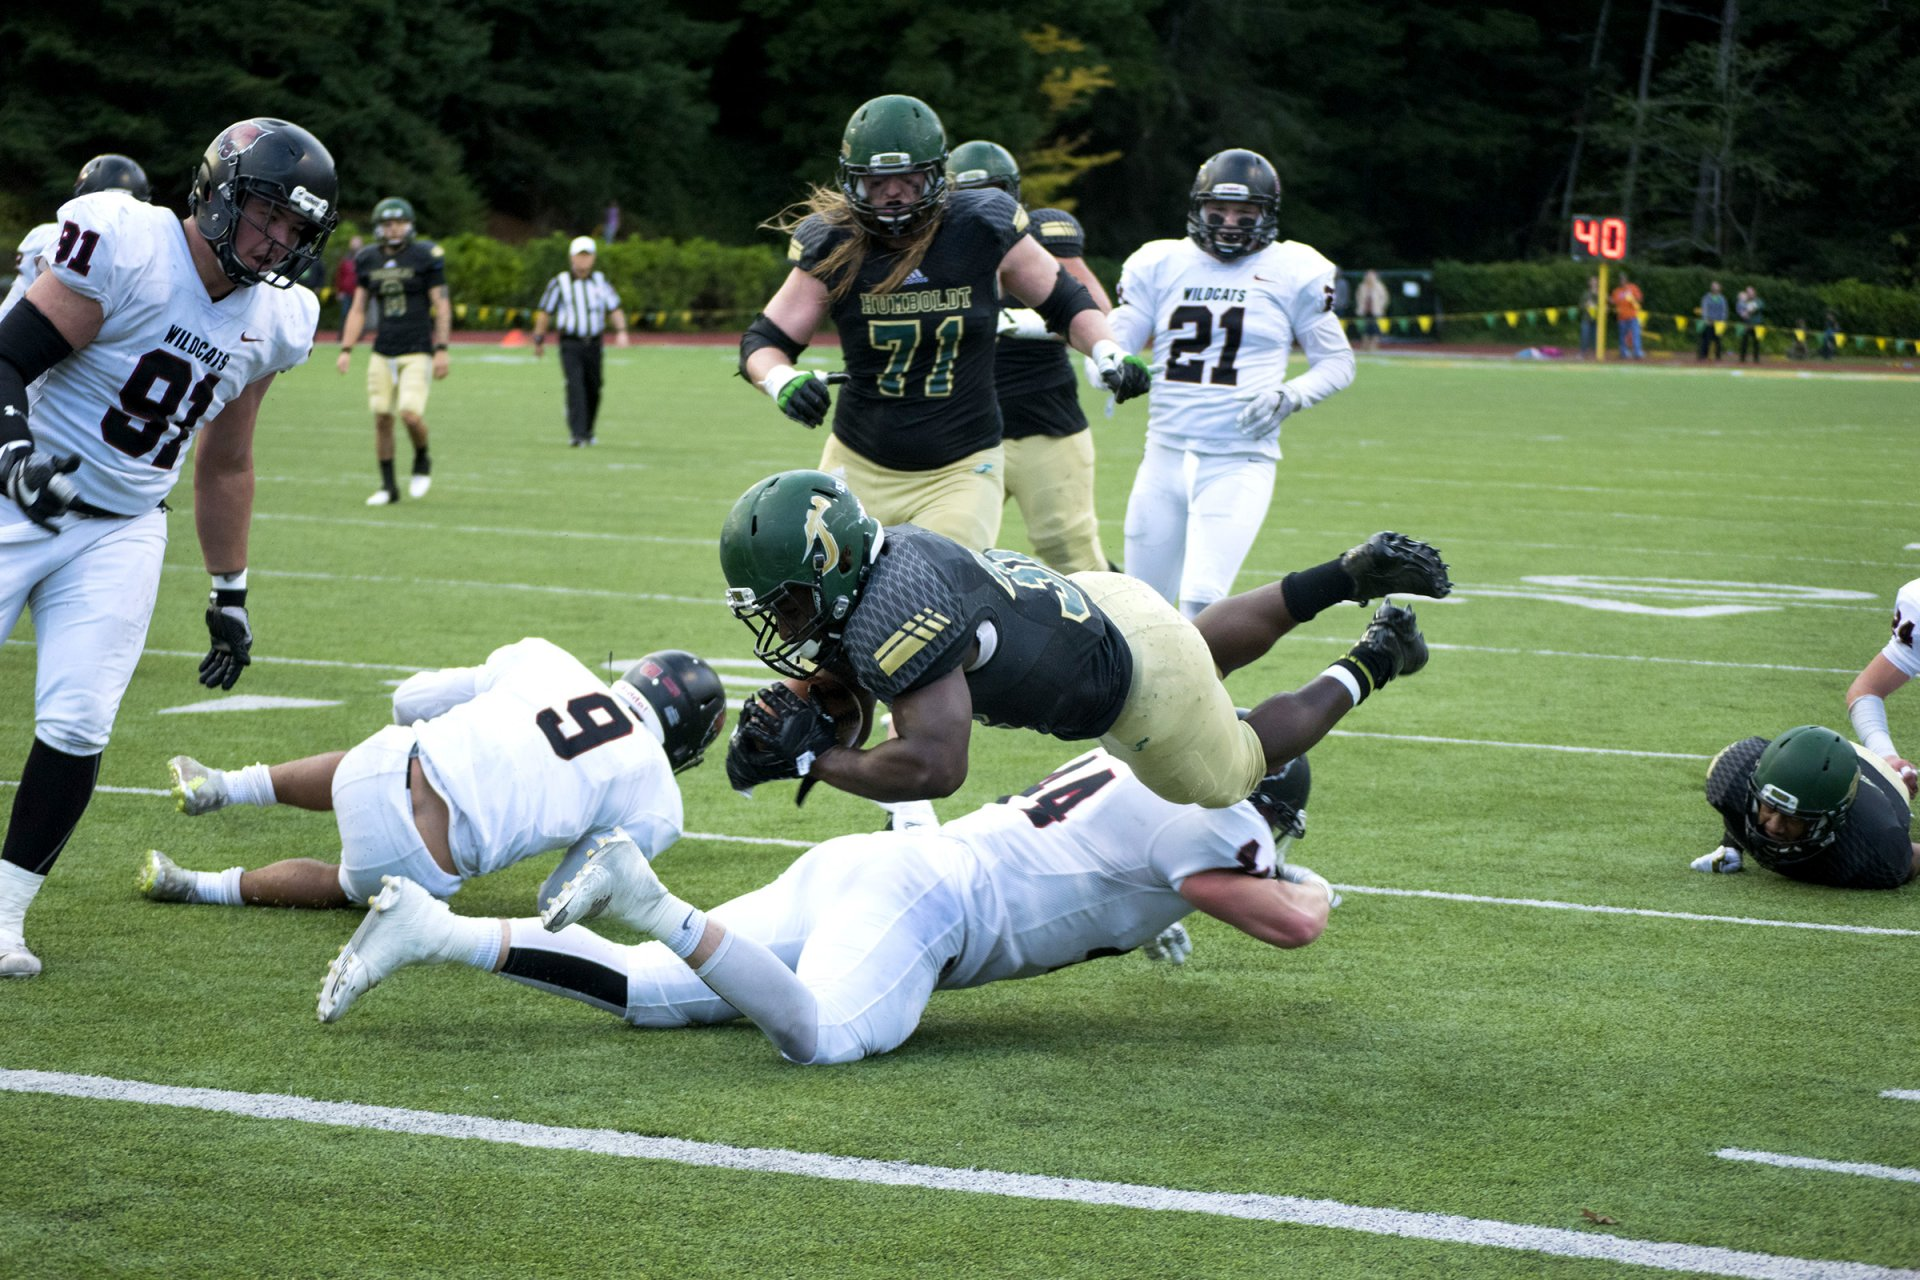 Humboldt State's Alex Cappa (71) blocks for Ja'Quan Gardner (32) as he scores one of the final touchdowns during the 4th quarter of Central Washington University's win of 42-28 at Redwood Bowl on Nov. 11th, 2017. | Photo by Deija Zavala